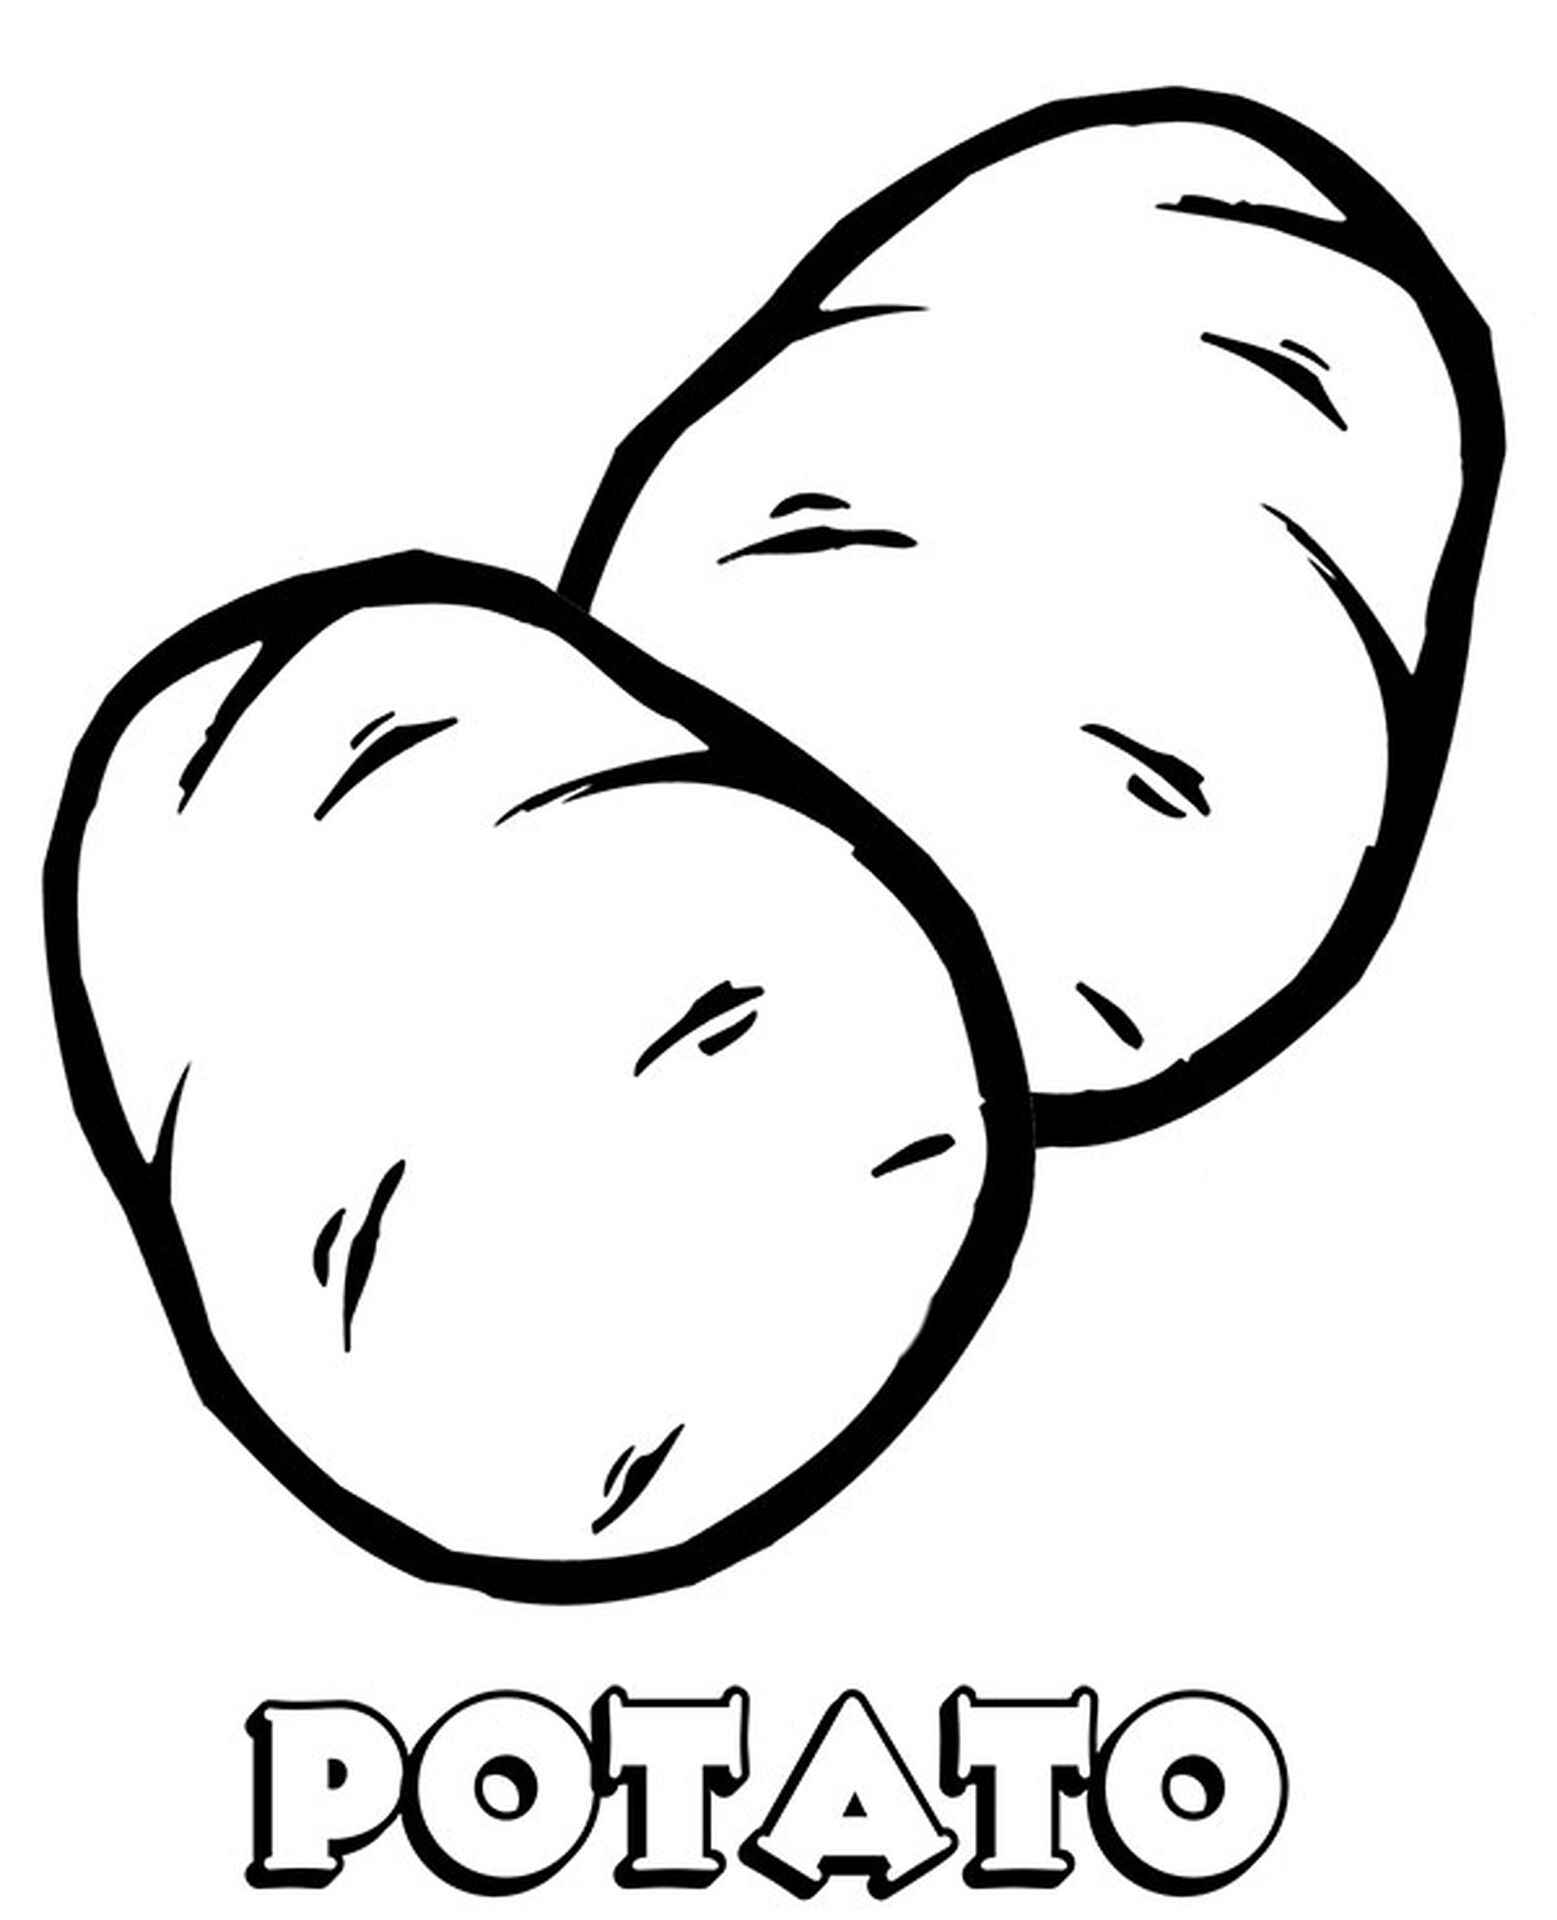 Potatoes Coloring Page